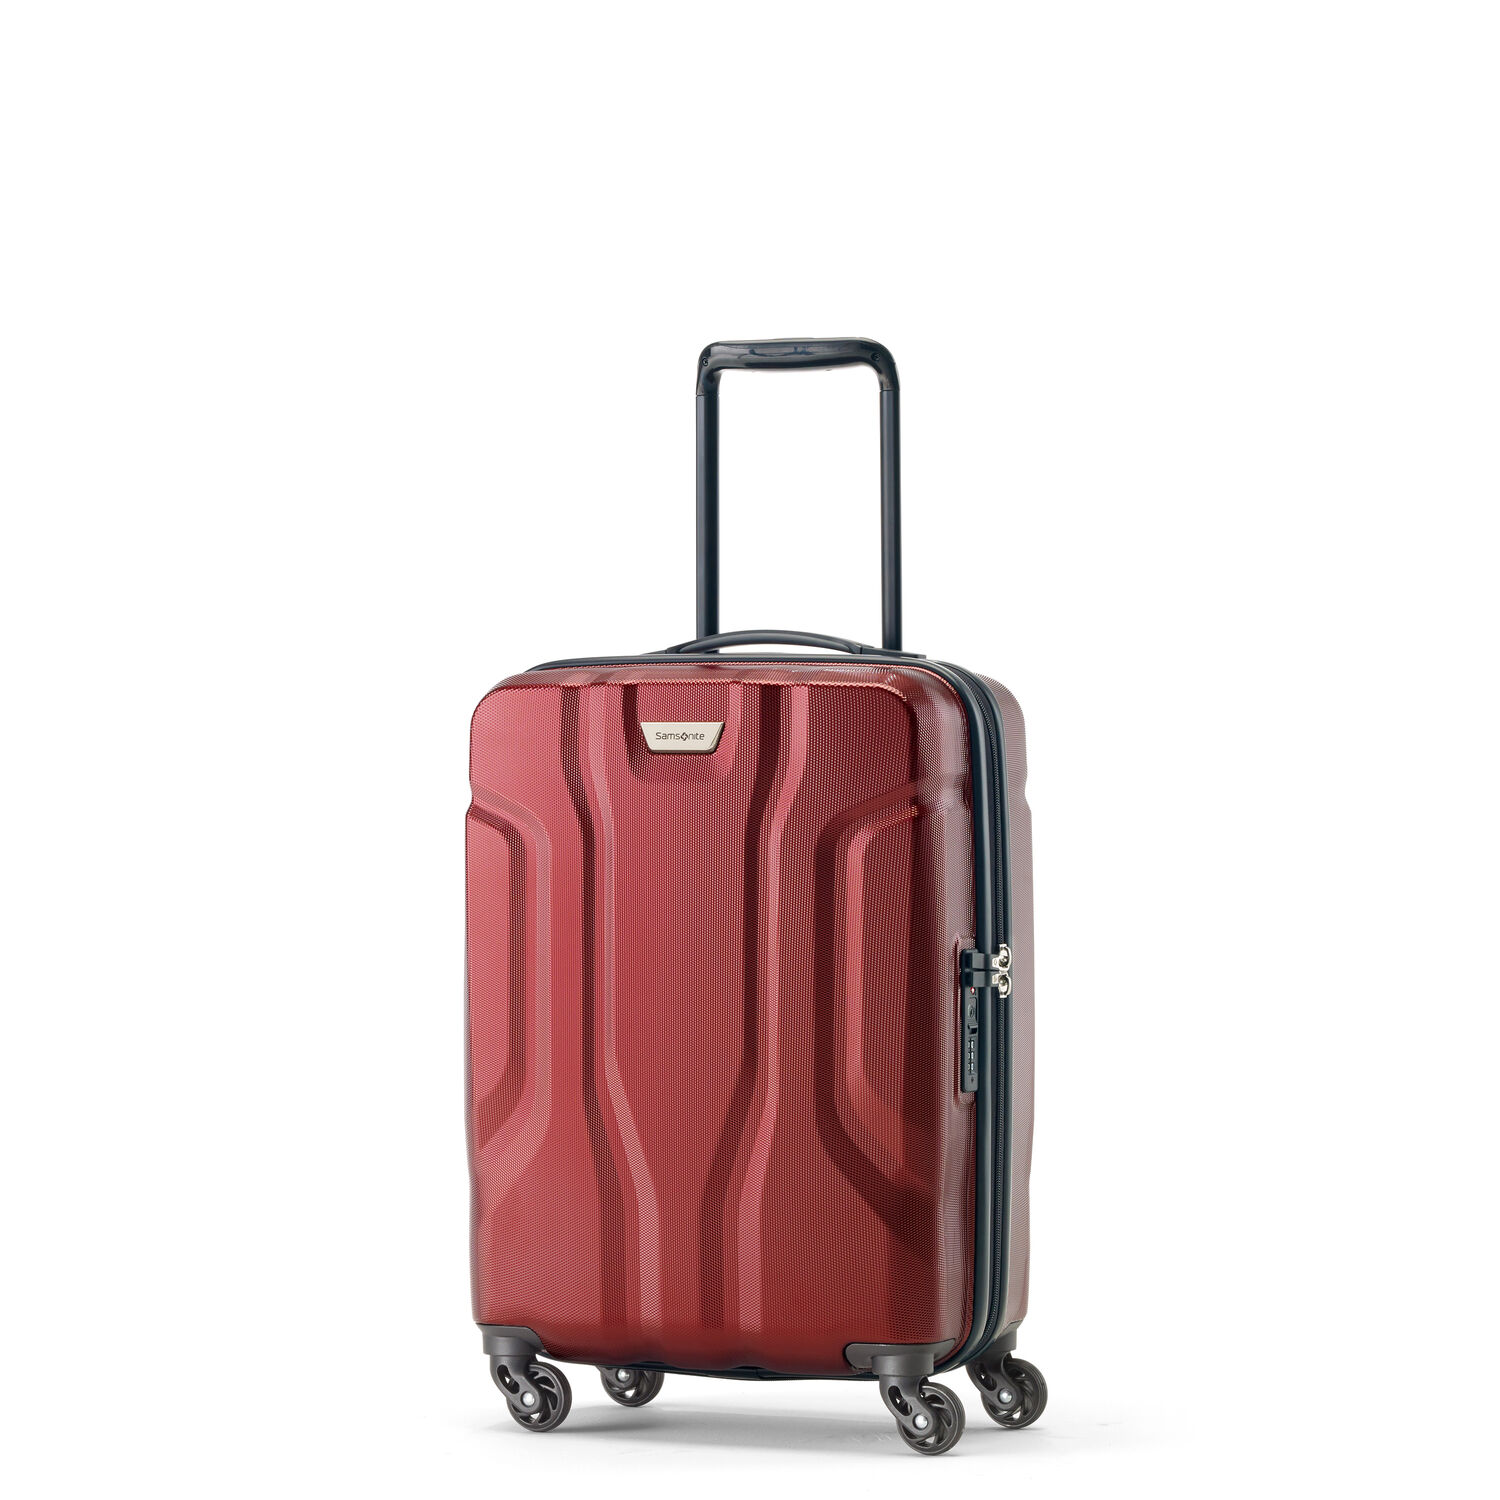 Samsonite Tribute NXT Spinner Carry-On in the color Red.